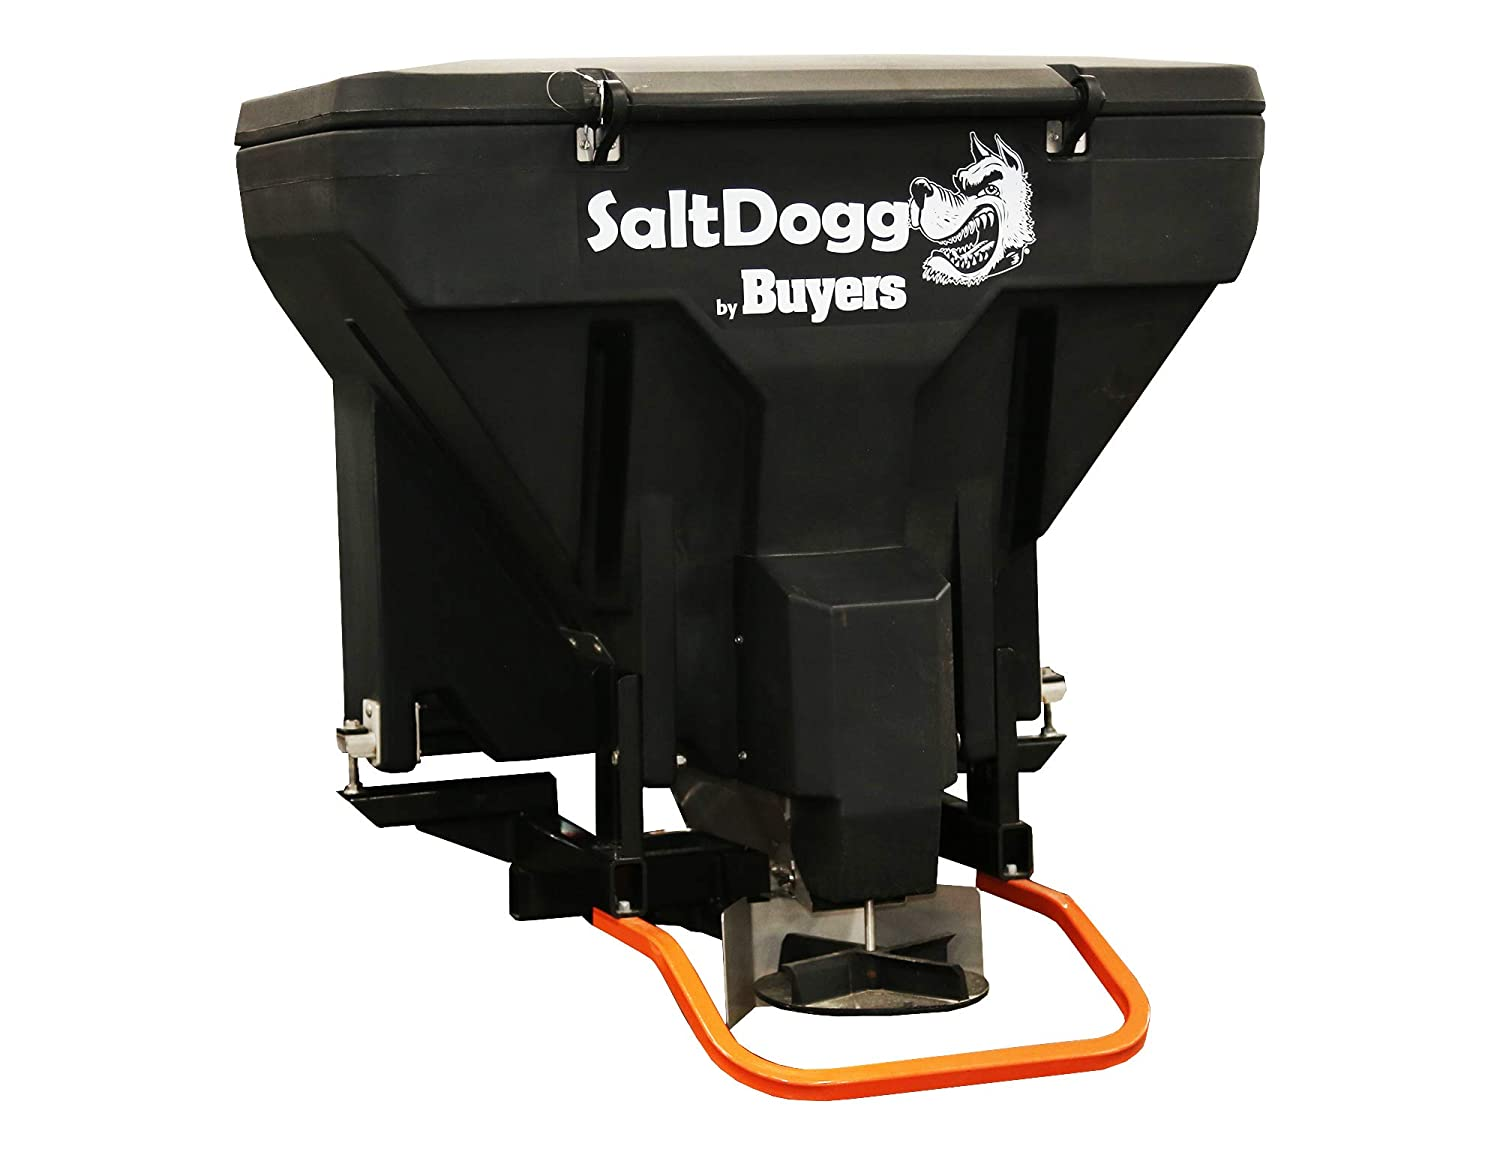 SaltDogg TGS07 Tailgate Spreader with 200-Pound Vibrator Kit